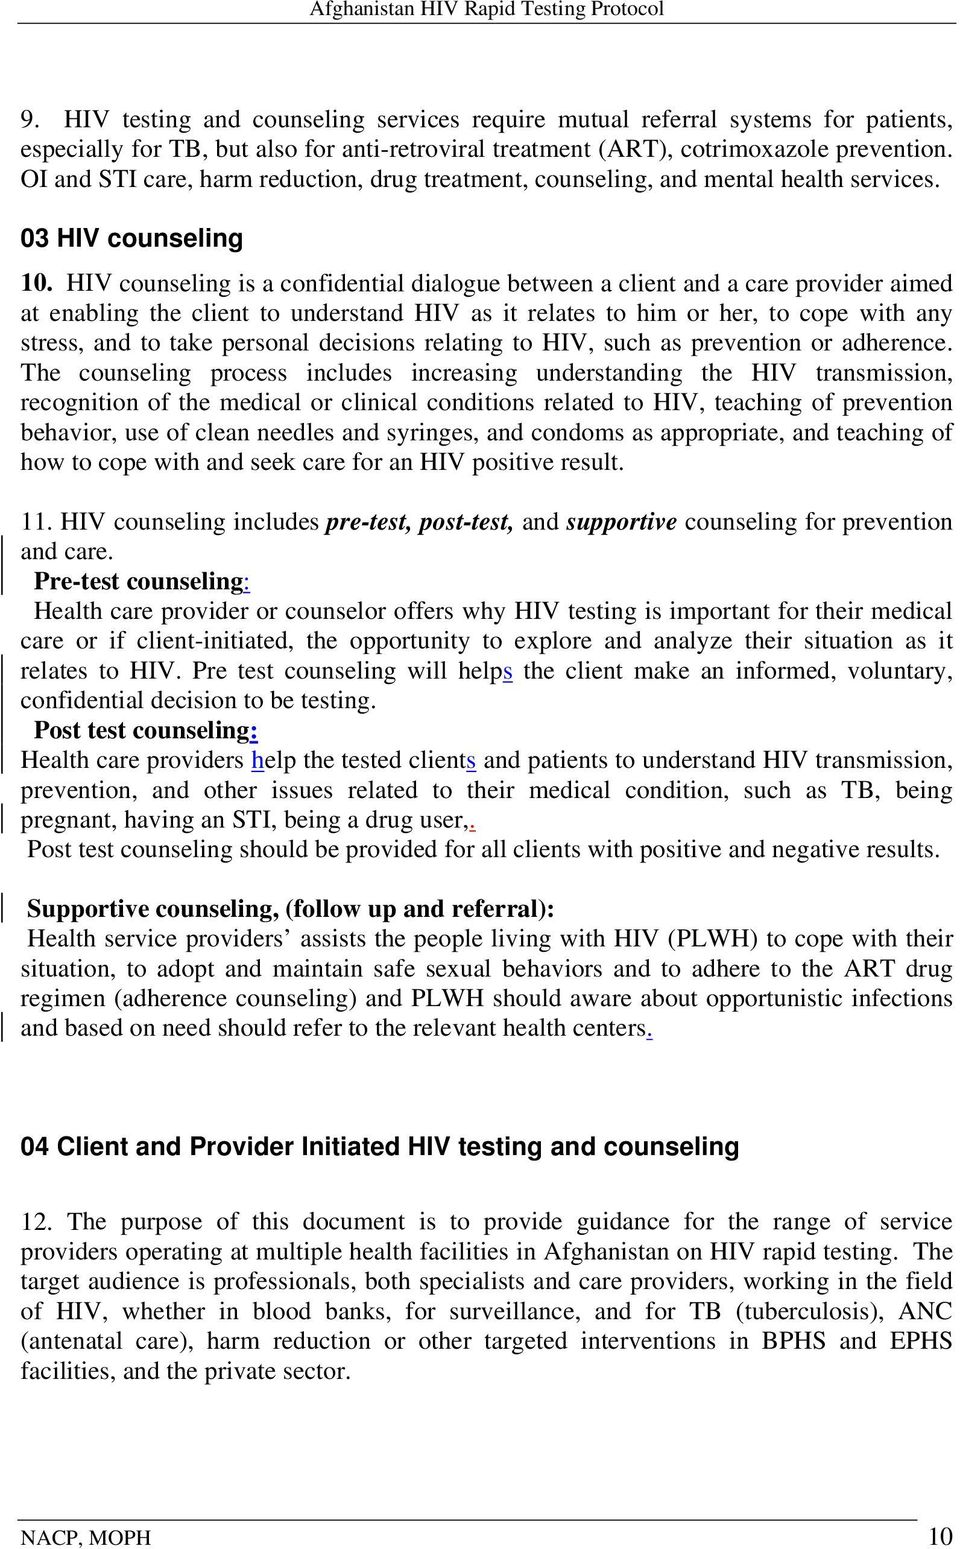 HIV counseling is a confidential dialogue between a client and a care provider aimed at enabling the client to understand HIV as it relates to him or her, to cope with any stress, and to take